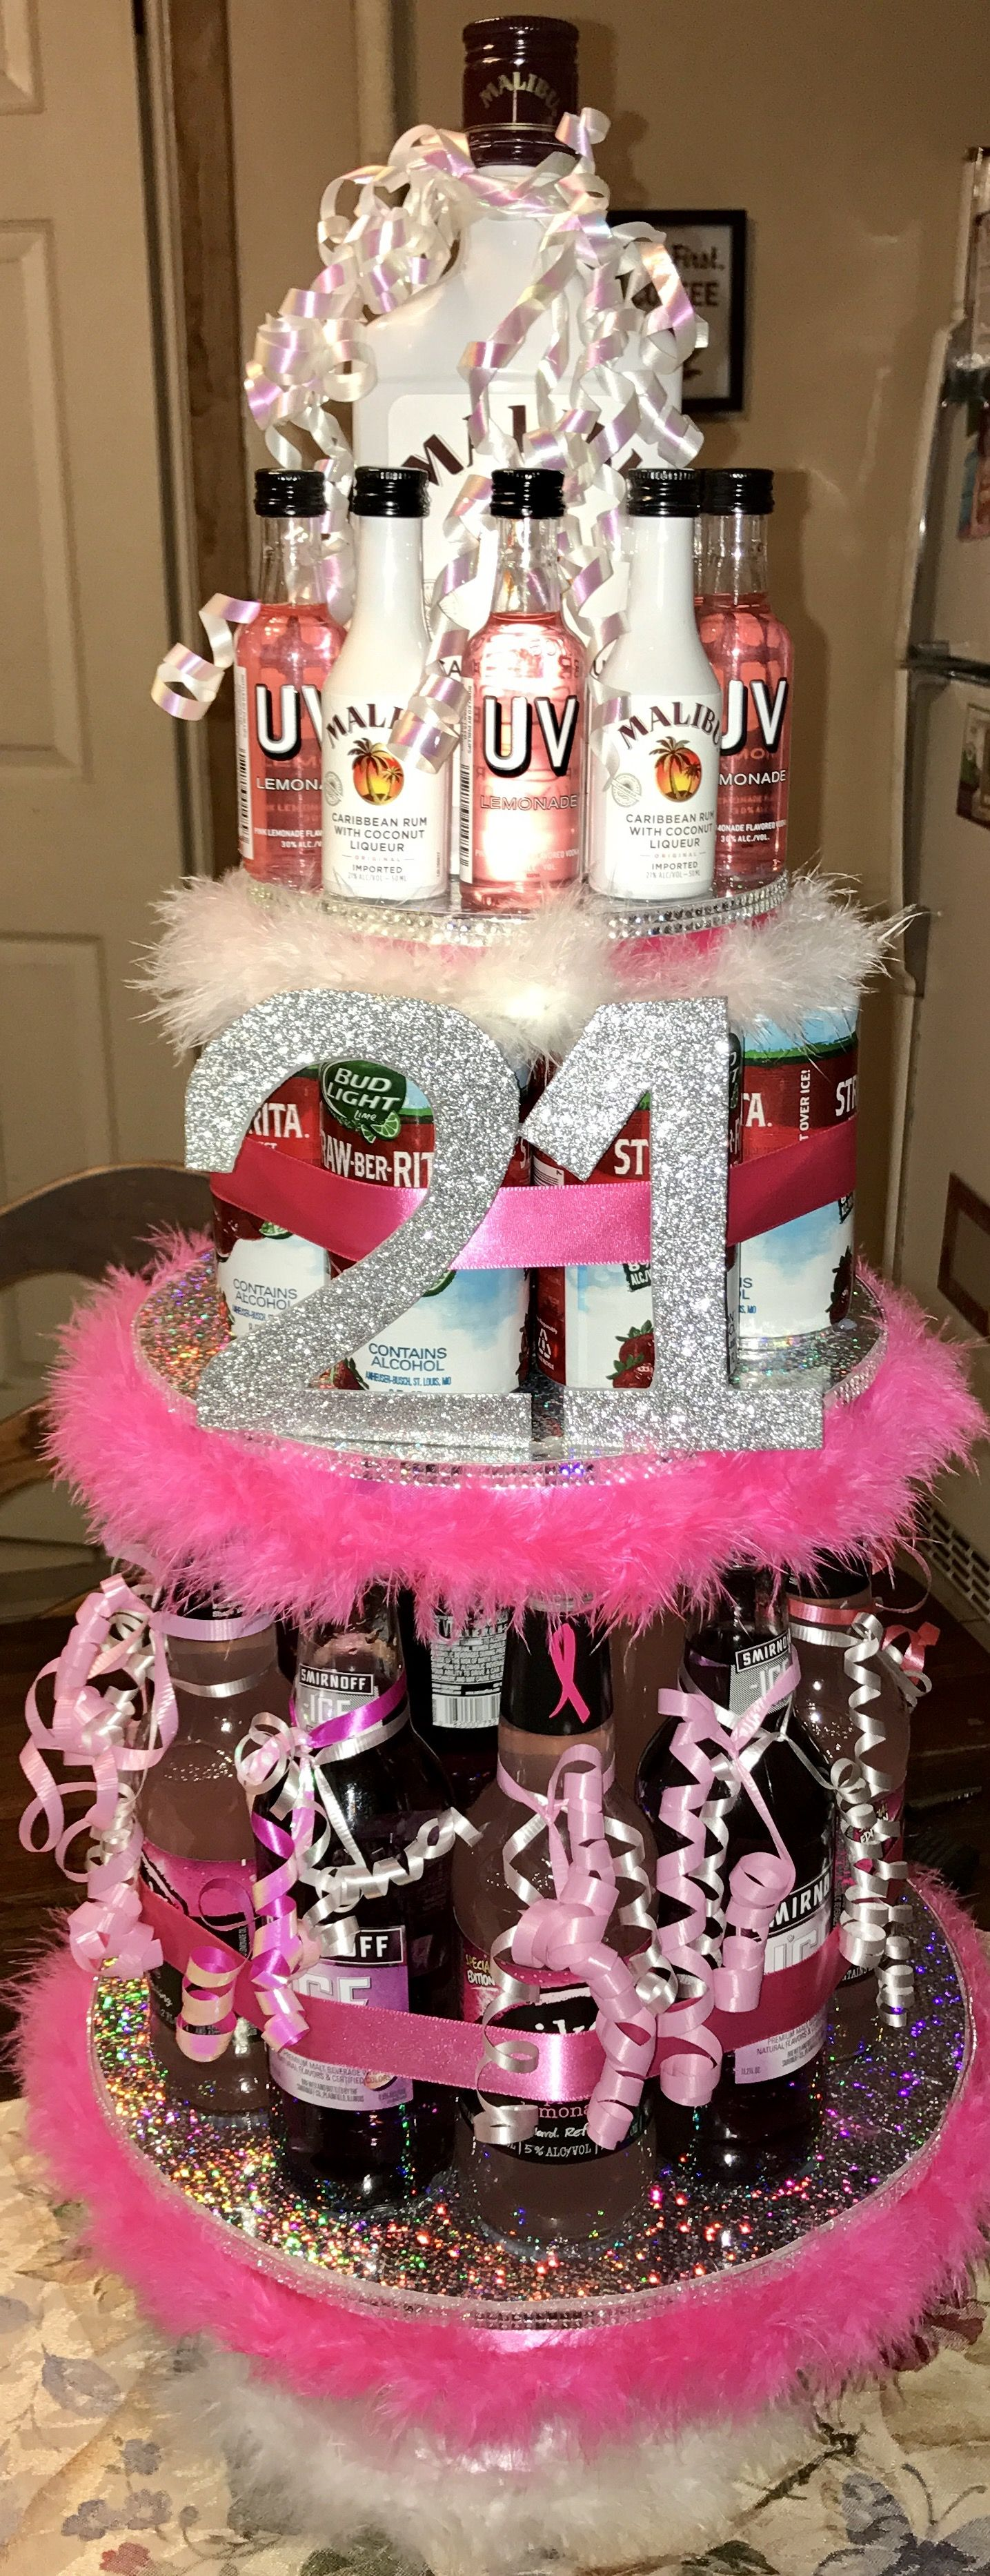 Best friend s 21st birthday alcohol tower Everything was handmade